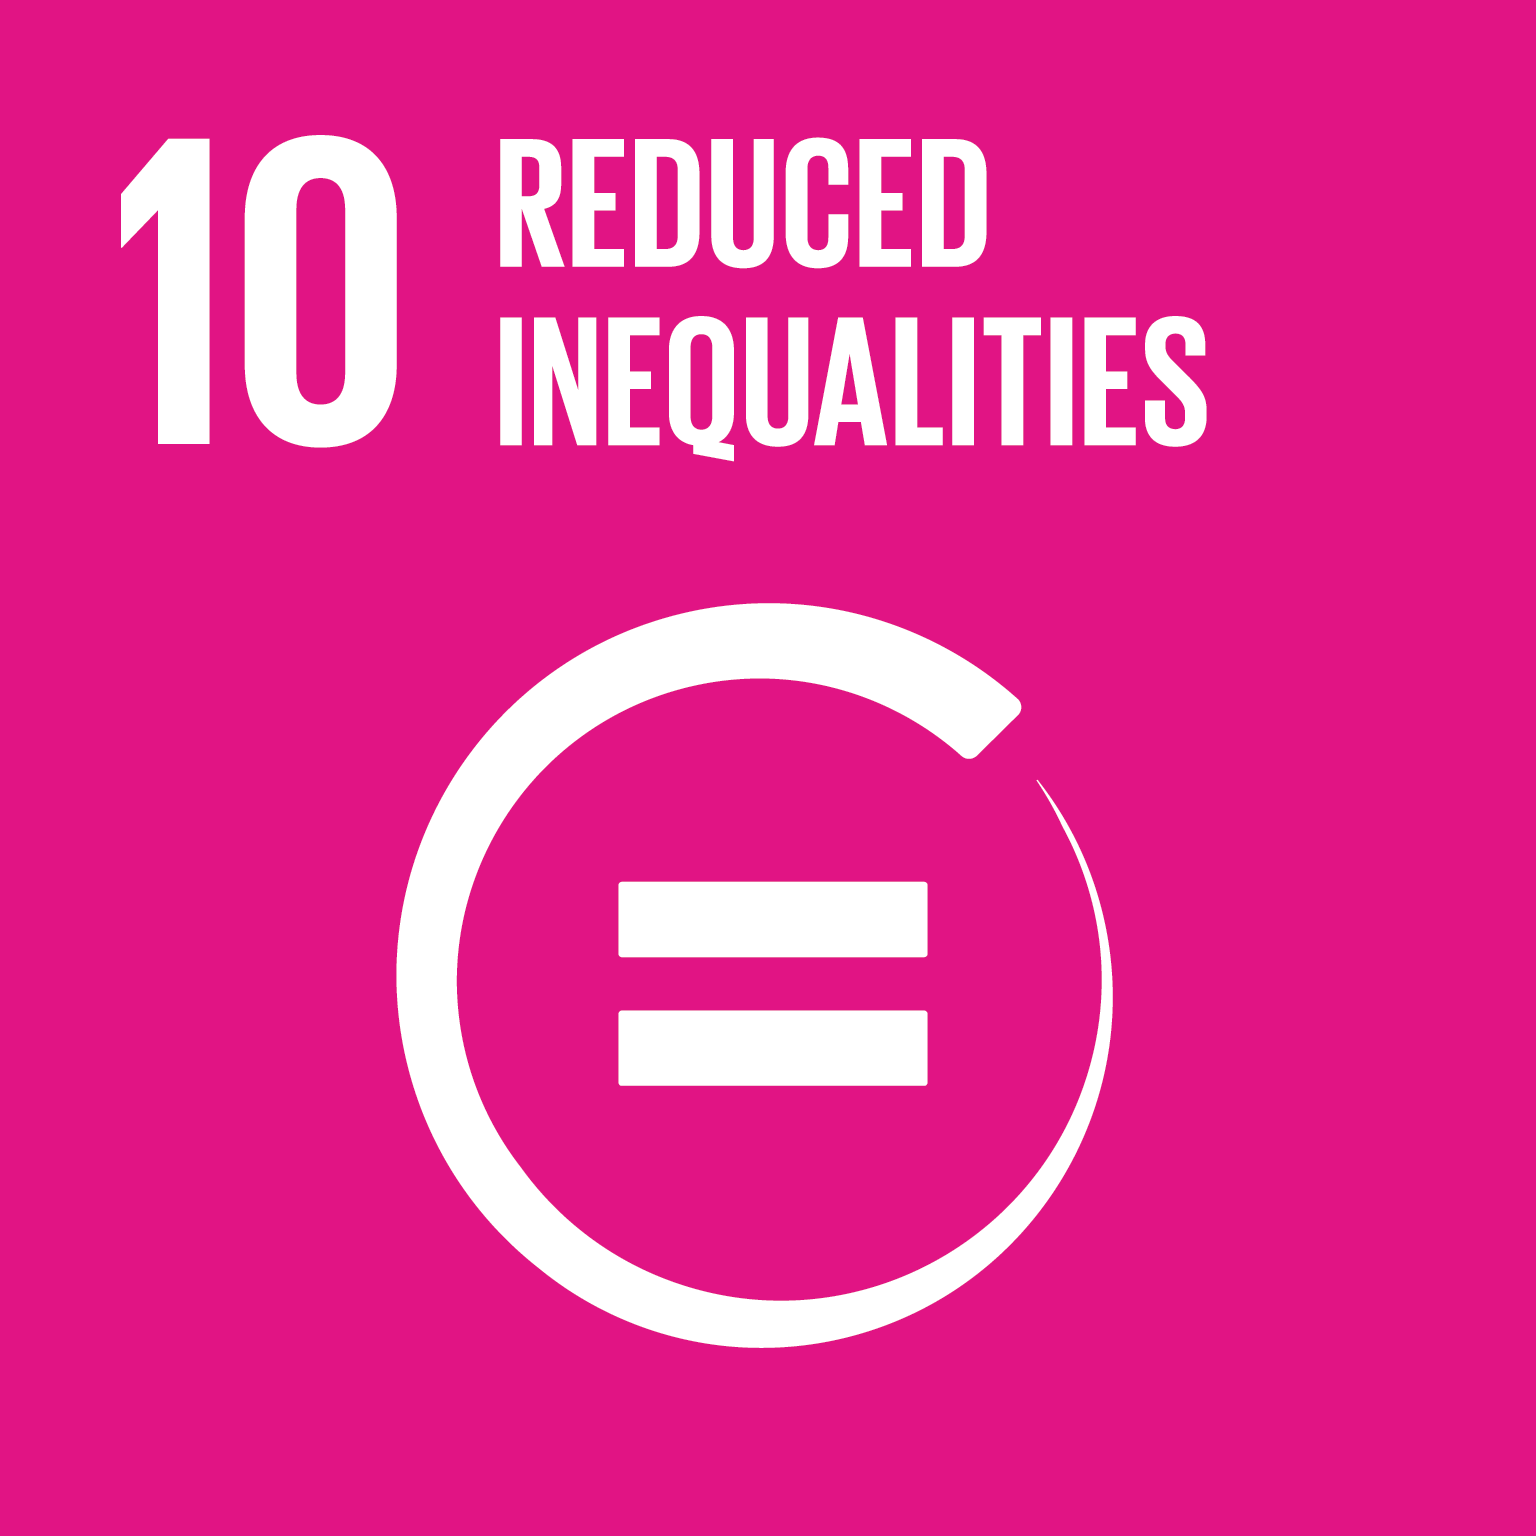 The richest 10% earns 40% of the total global income. Creating greater work opportunities for socio-economically disadvantaged groups, works towards  Reduced Inequalities  and is a proven path to social inclusion'